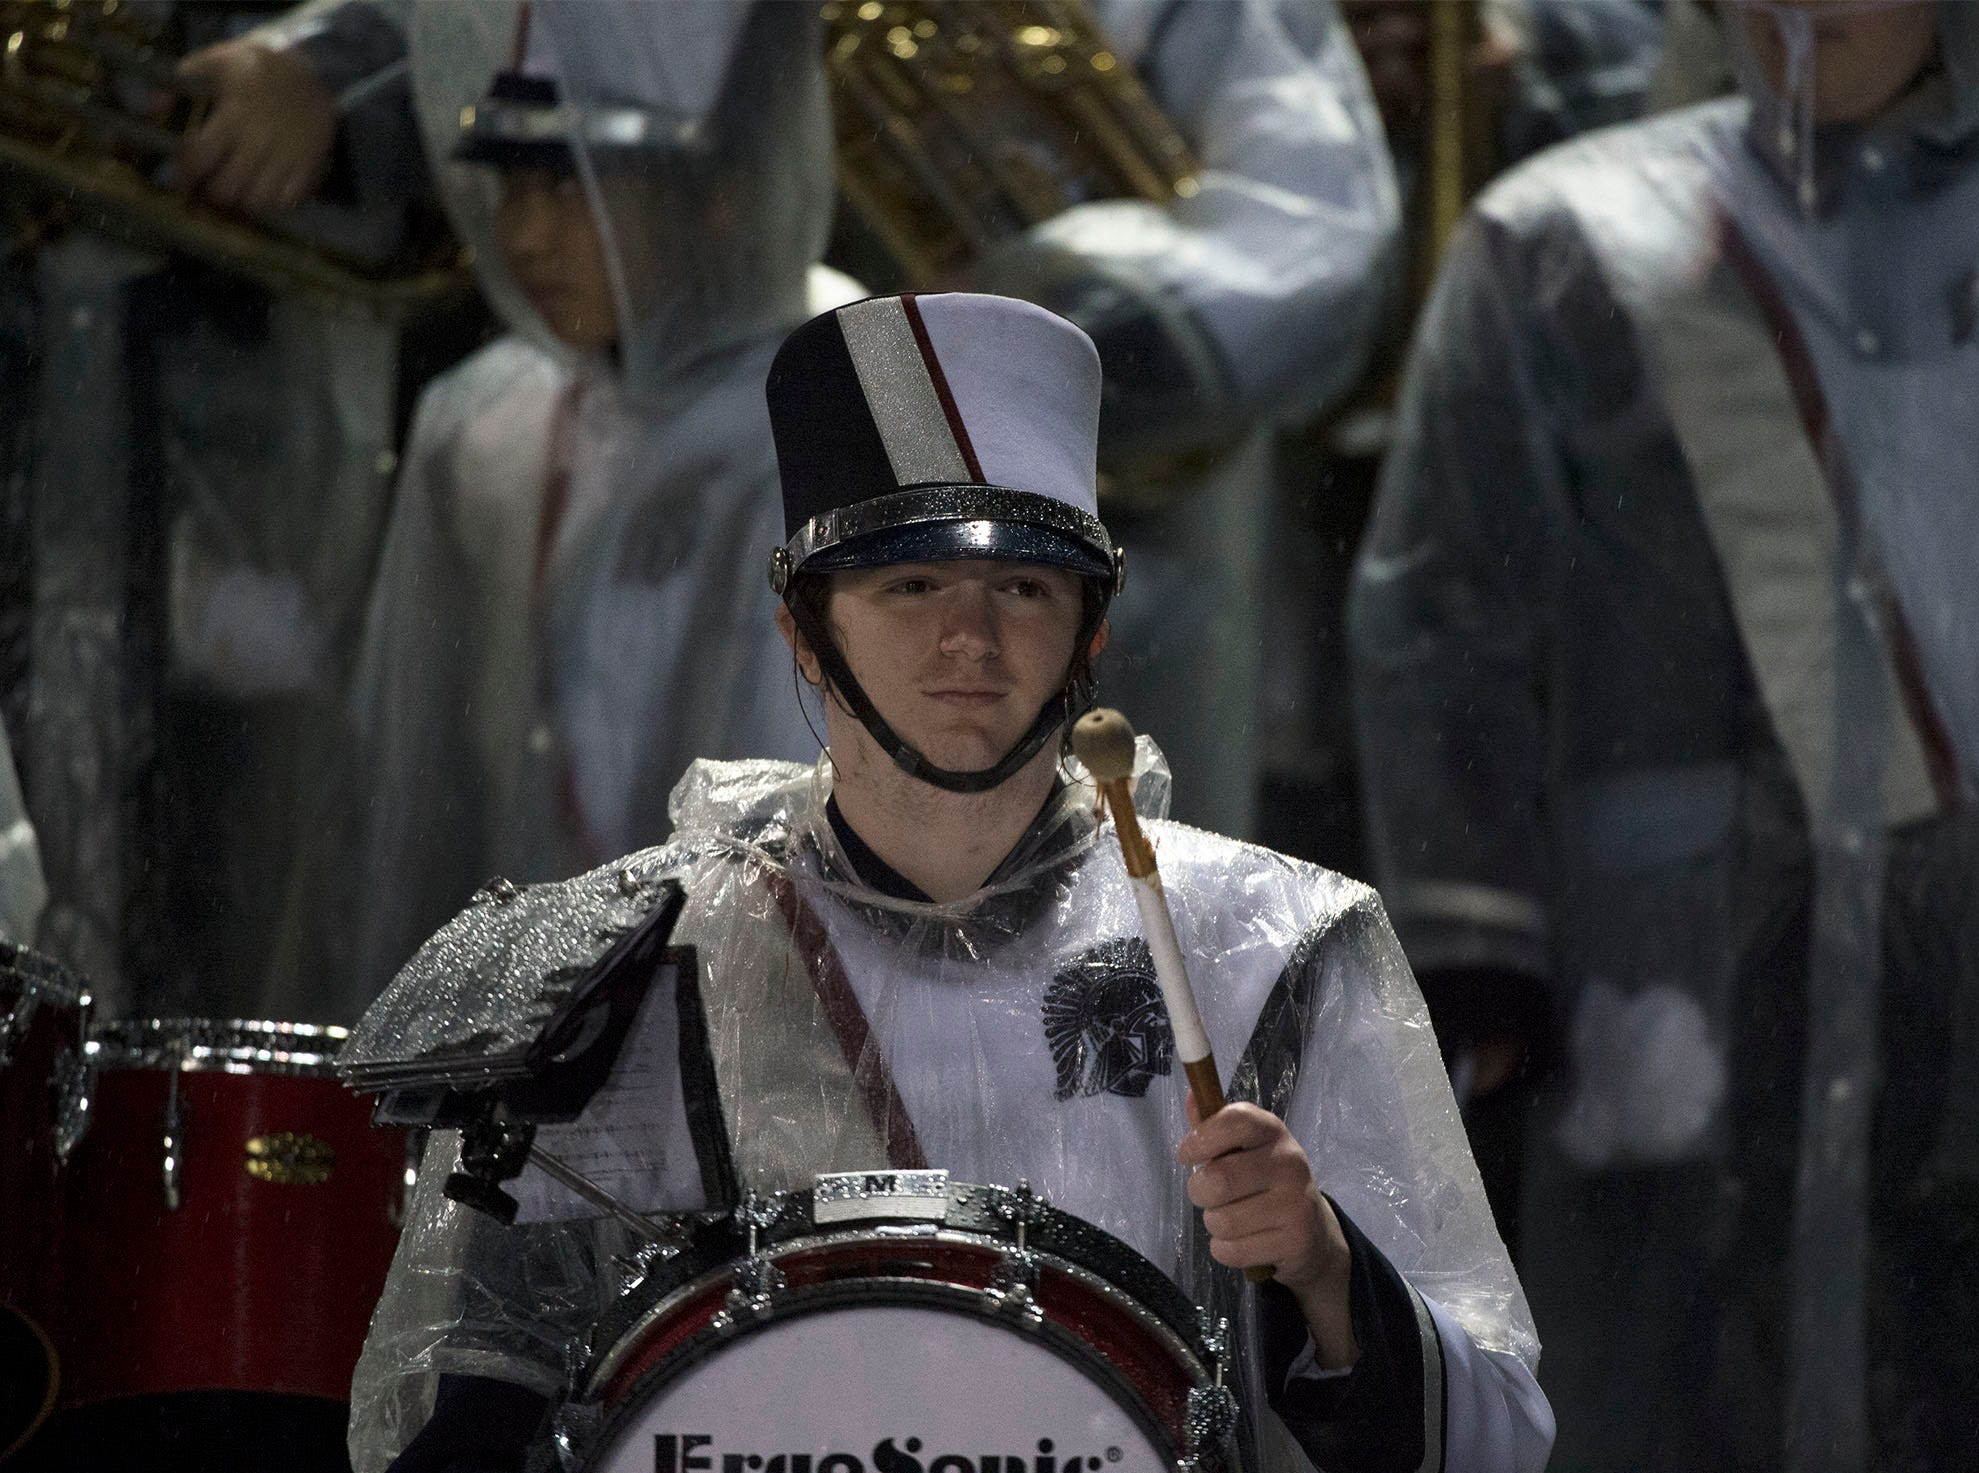 Chambersburg Marching Band members are geared for the rain. Chambersburg Trojans dropped a close game 20-17 to Manheim Township Blue Streaks in the rain during PIAA District 3 playoff football on Friday, Nov. 2, 2018.